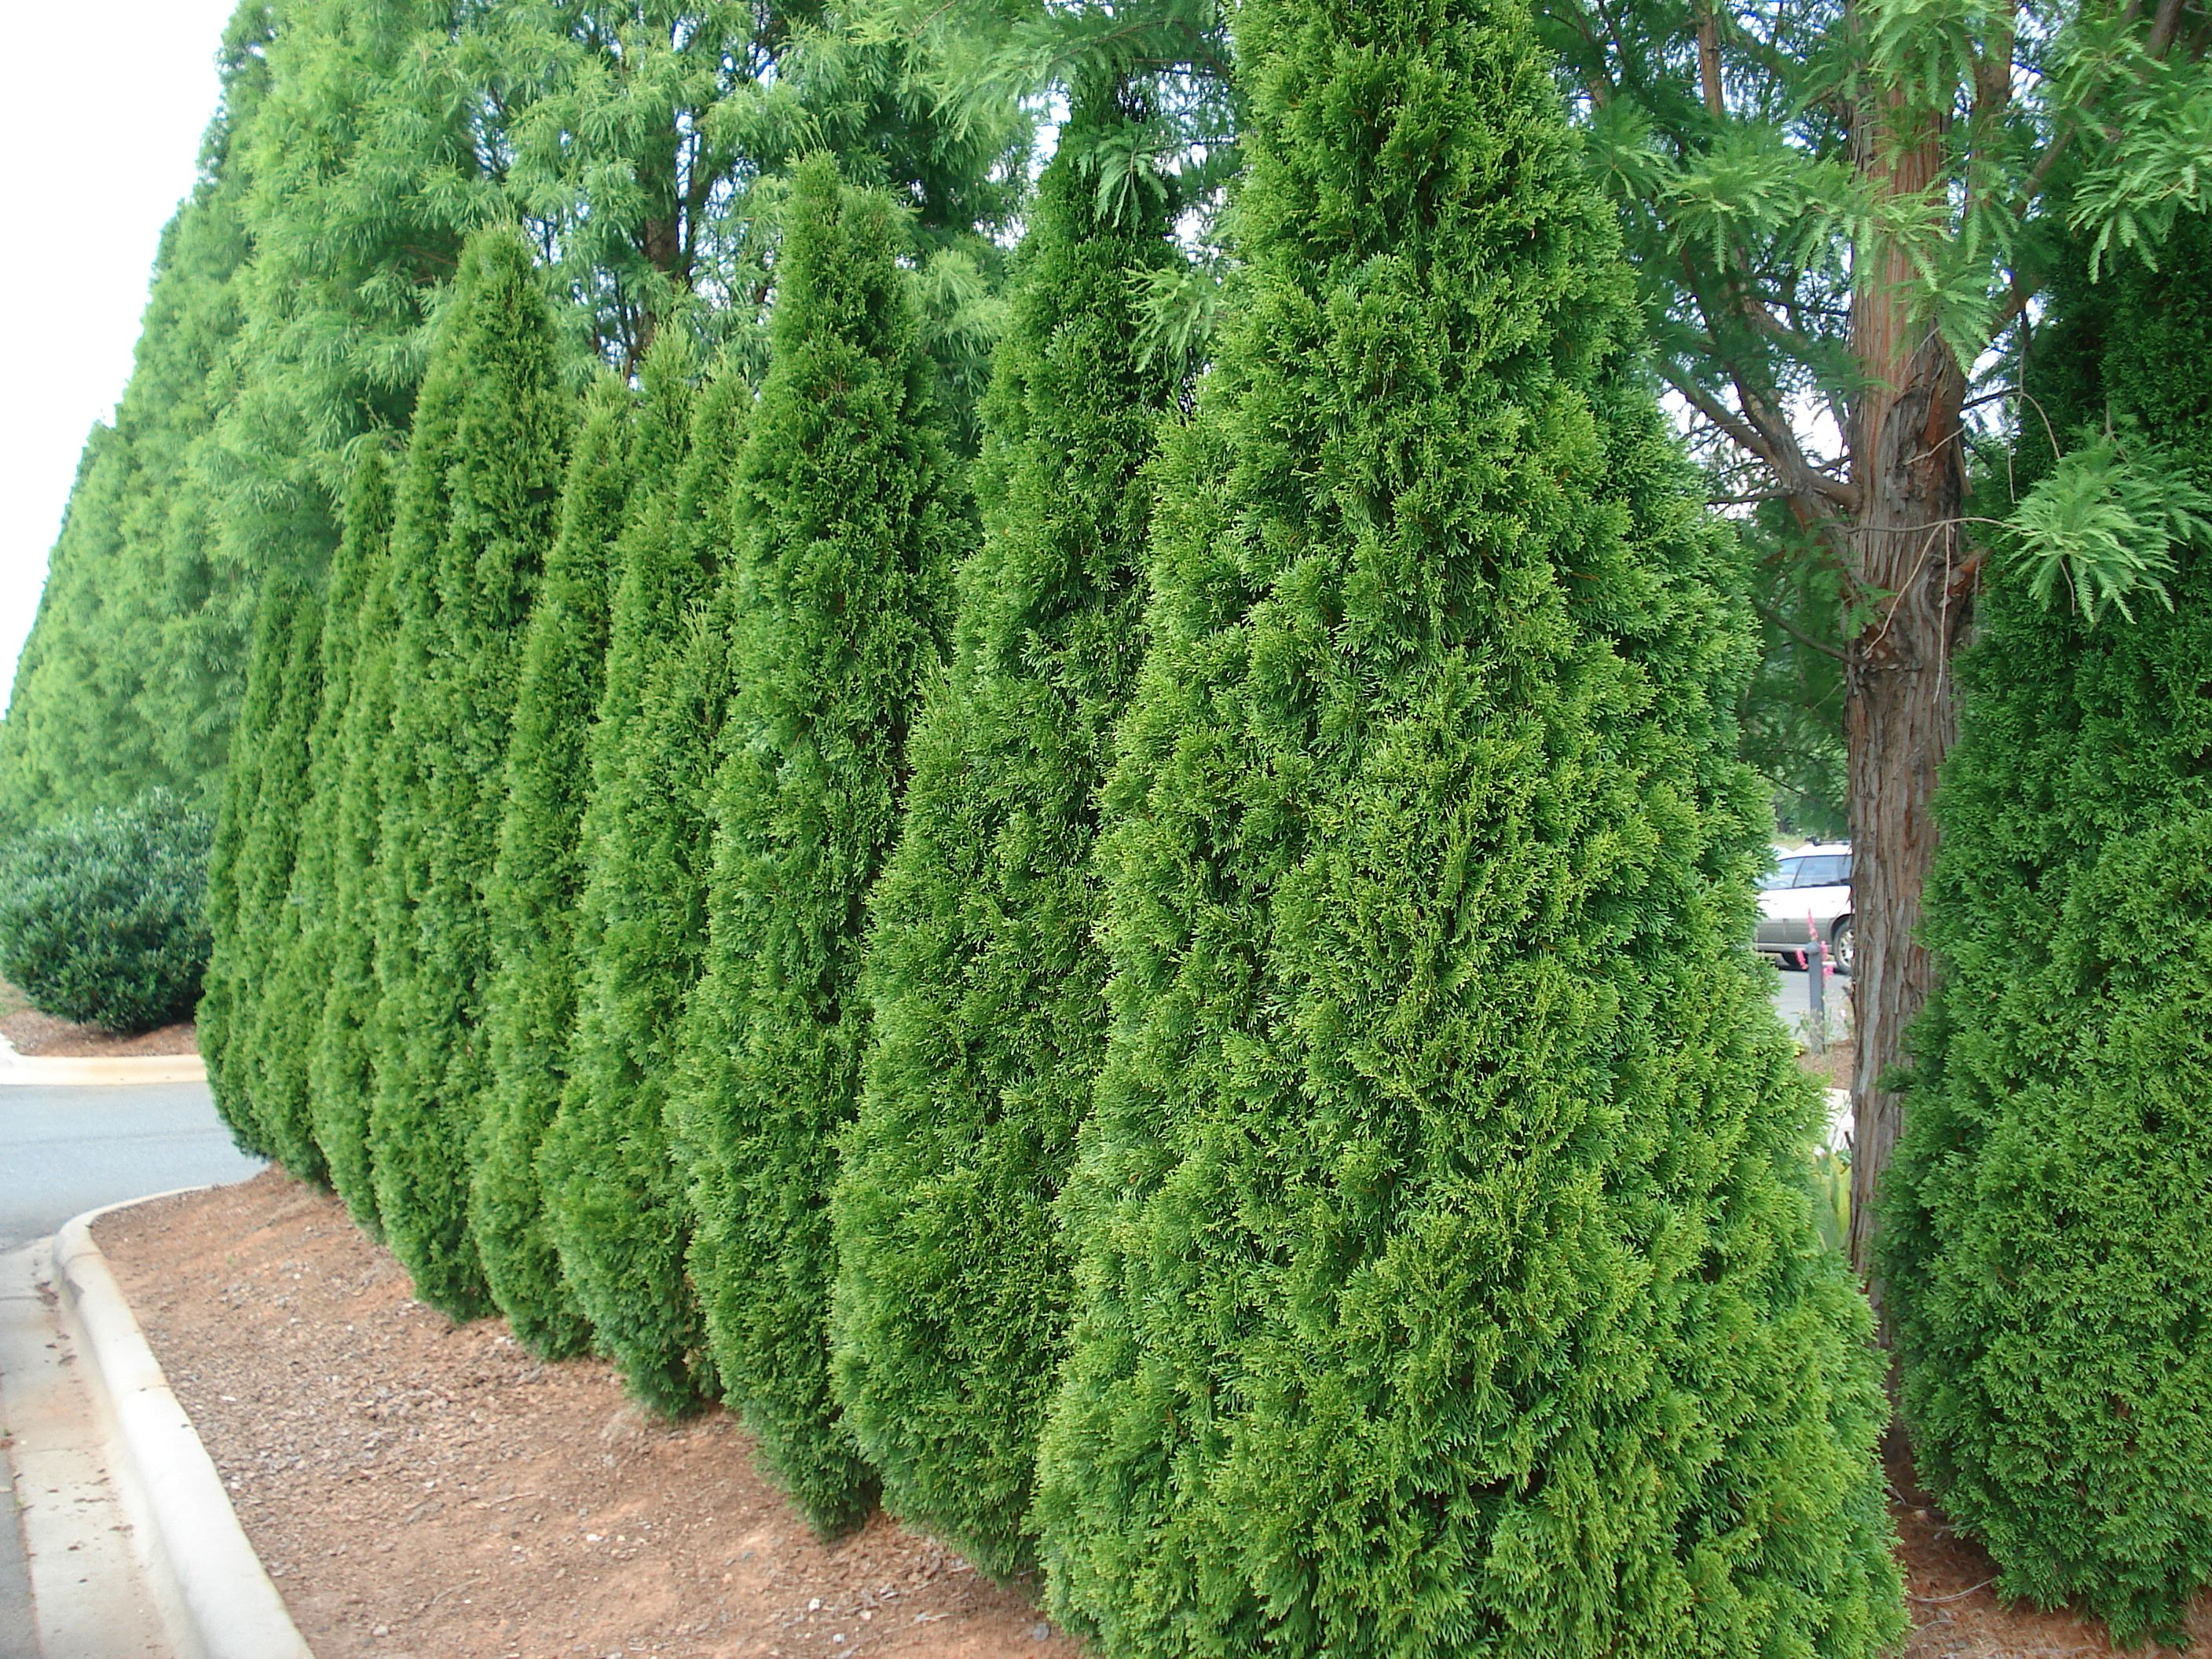 Shrubs For Privacy Fast Growing Trees Medium Sized Privacy Trees To Block Nosey Neighbors Fast Growin Emerald Green Arborvitae Backyard Trees Privacy Trees